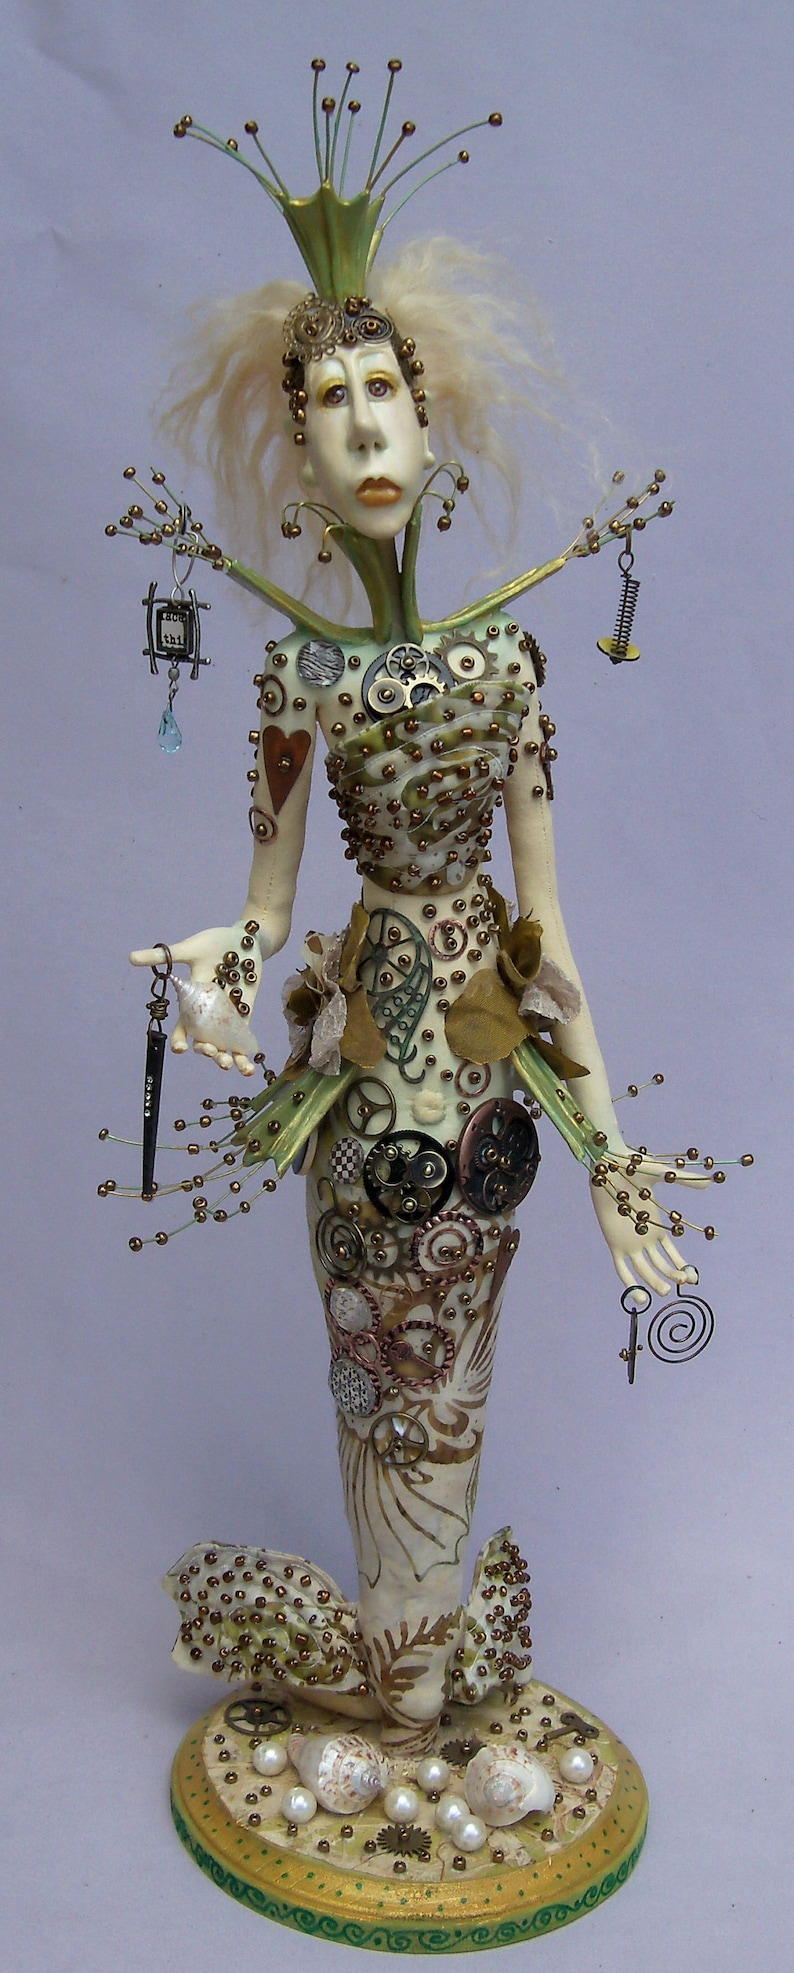 Metalmaid E-Class by Linda Hollerich Paper Clay Artist image 0